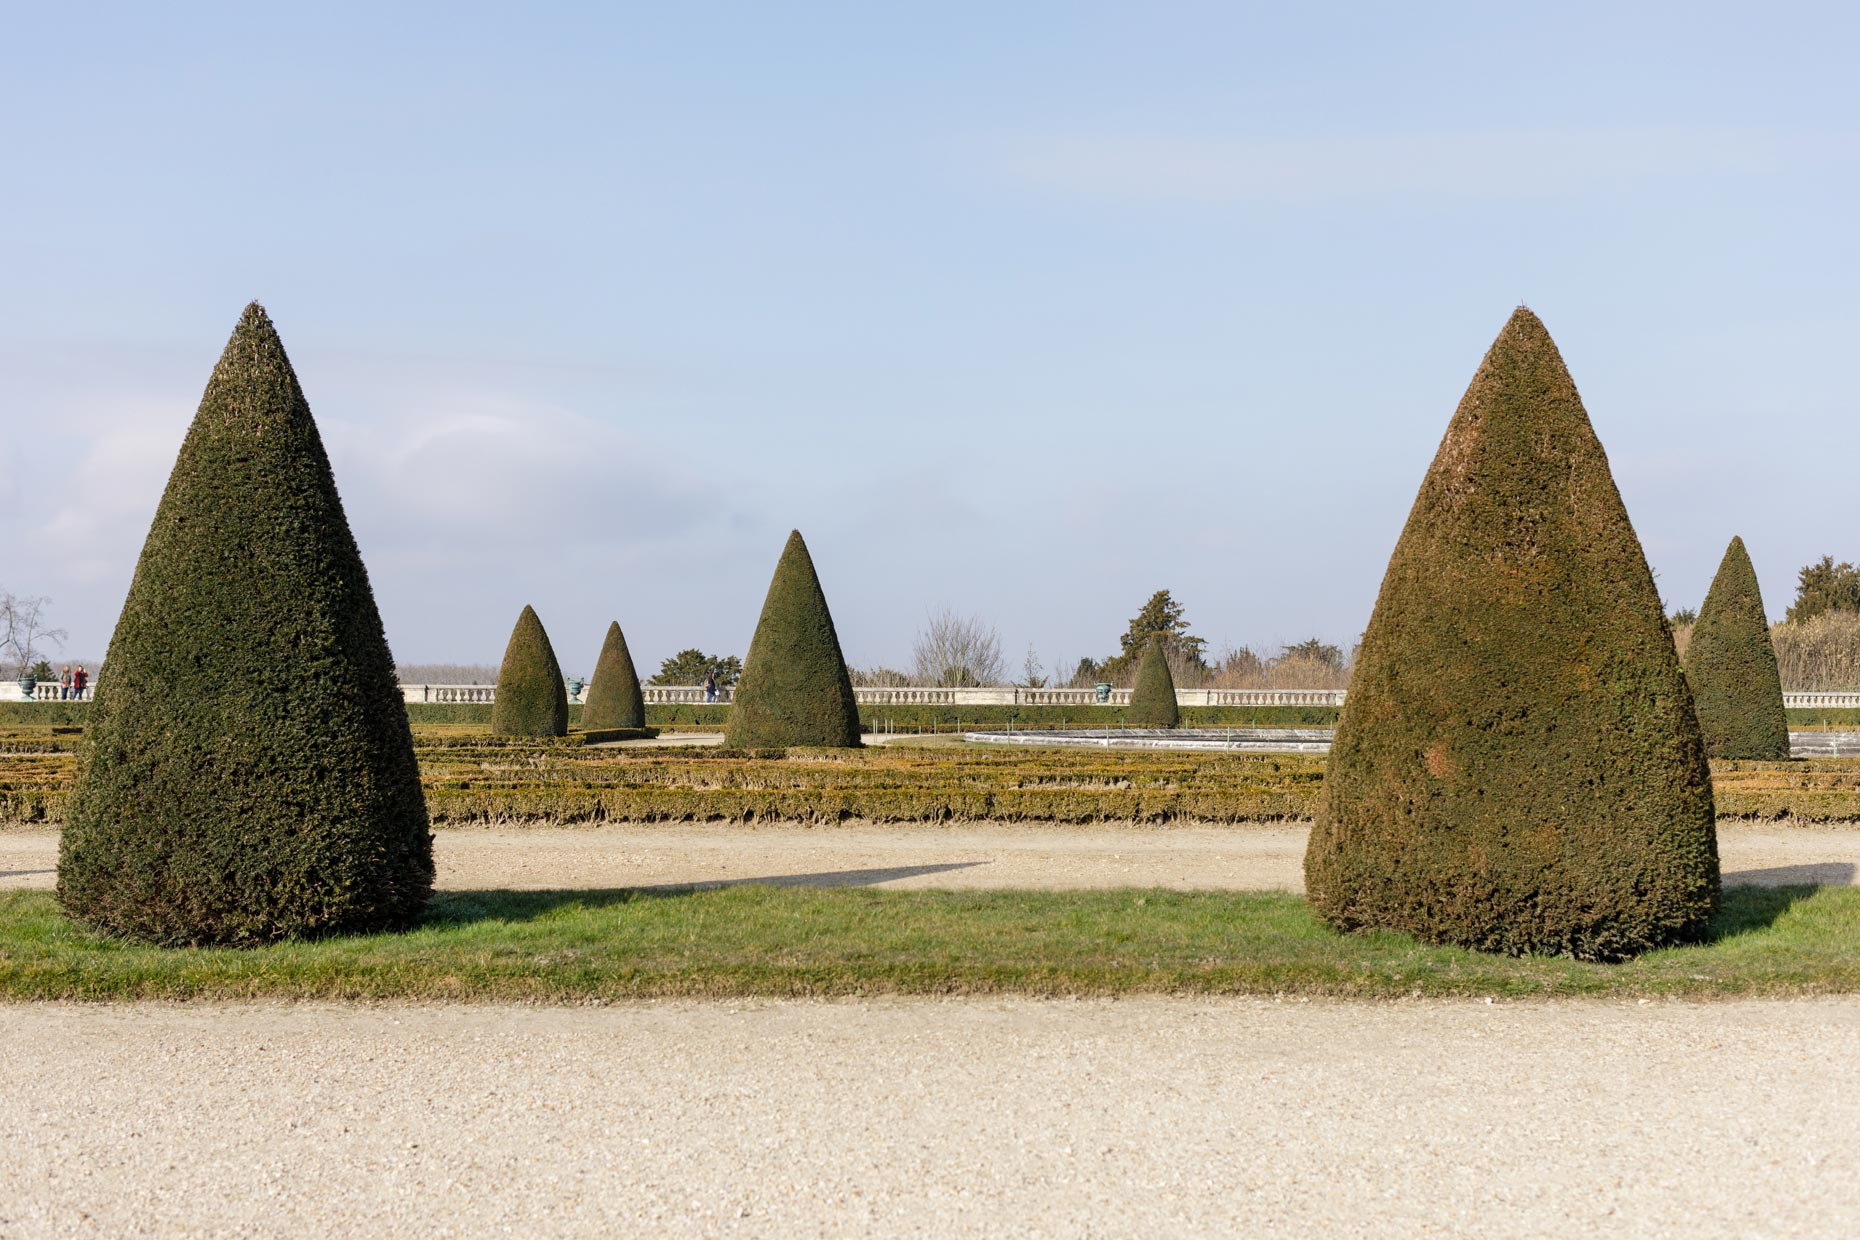 The Manicured Gardens of Versailles, France | Travel Photography